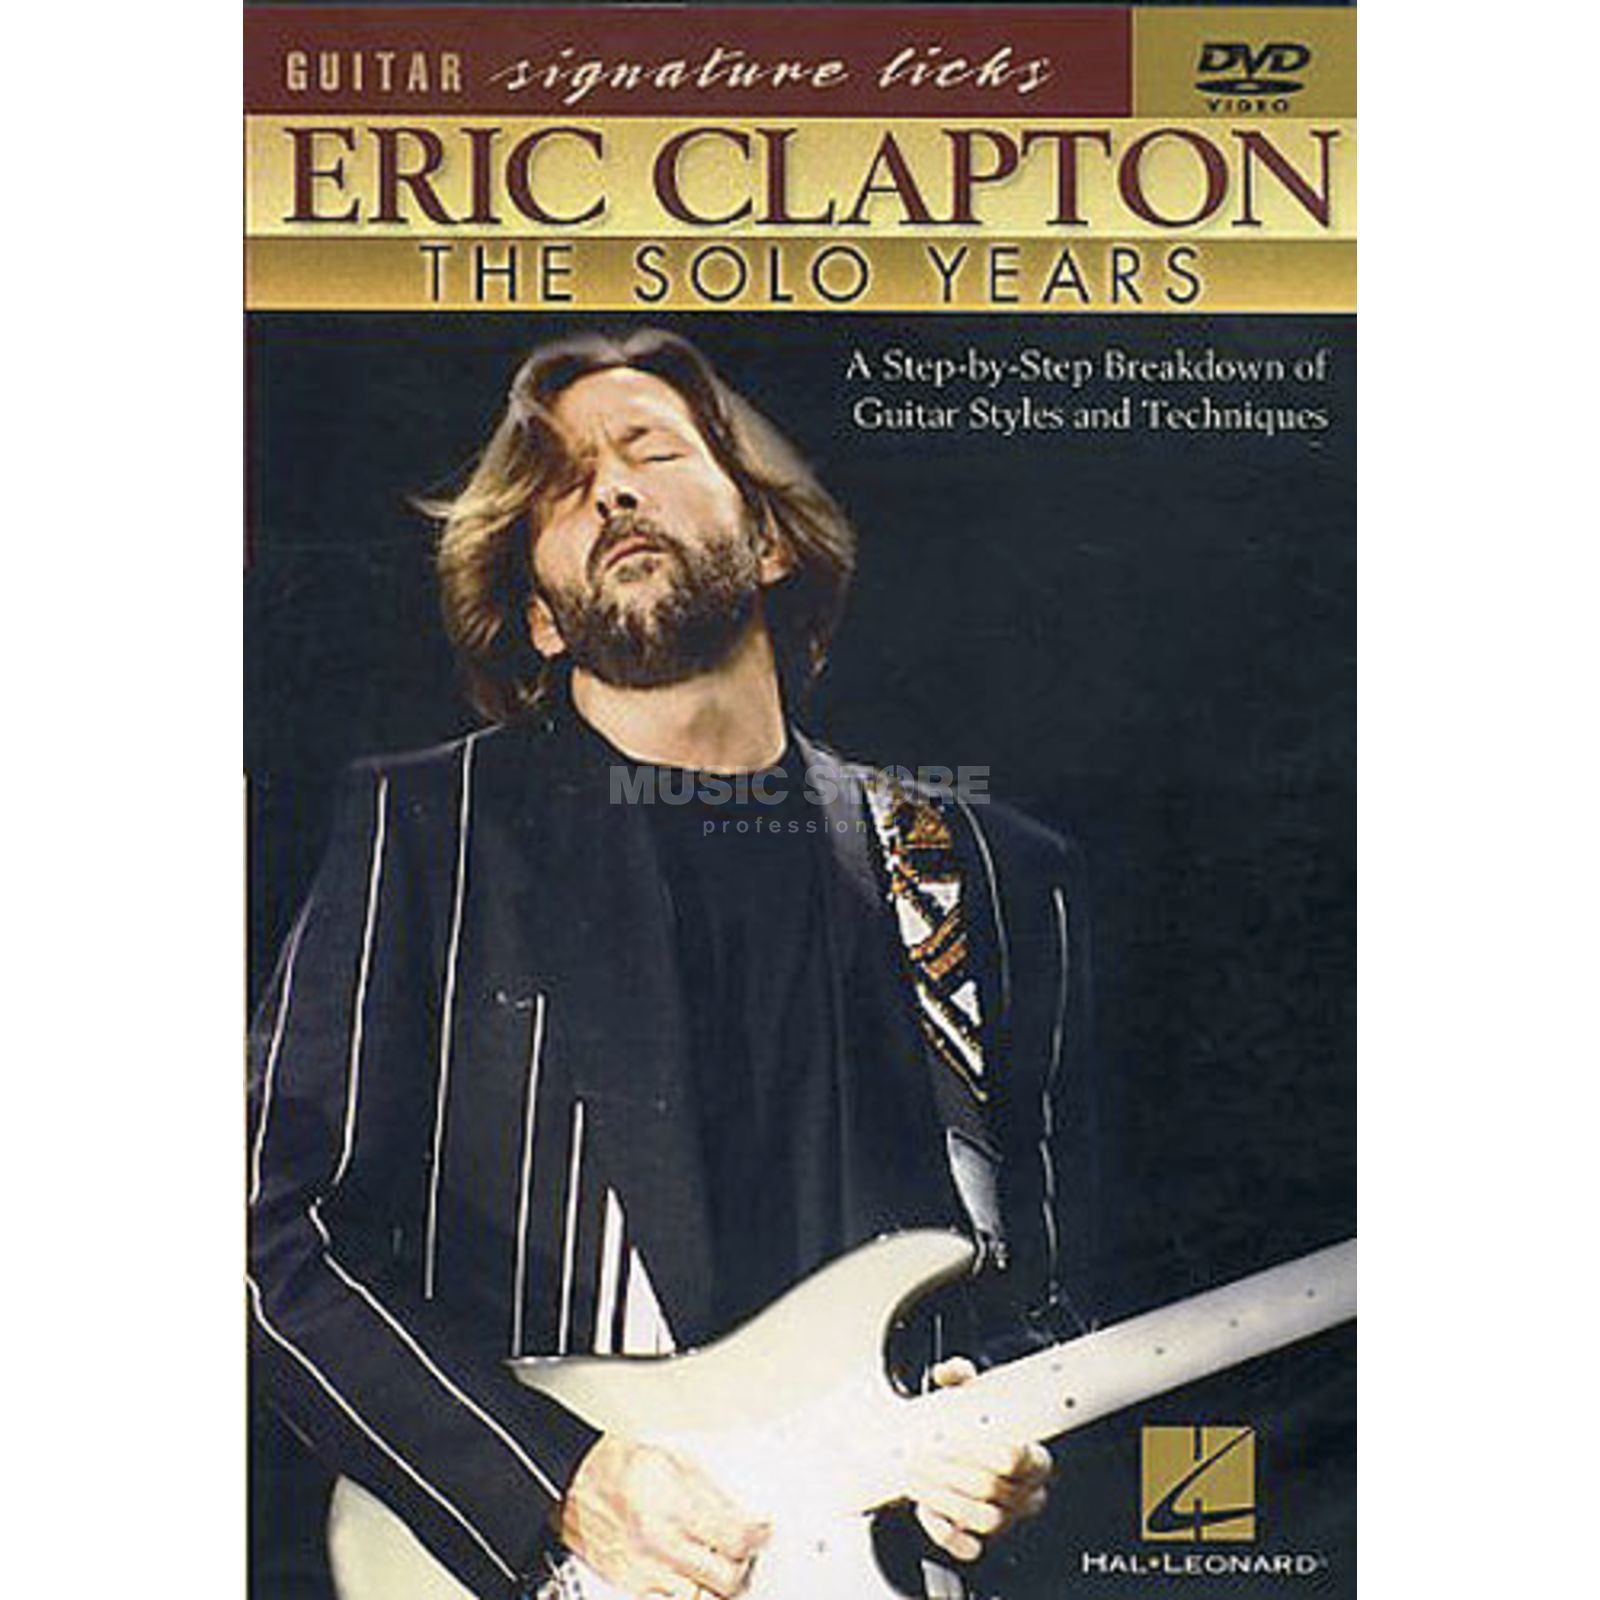 Hal Leonard Eric Clapton - Solo Years Guitar Signature Licks, DVD Produktbild